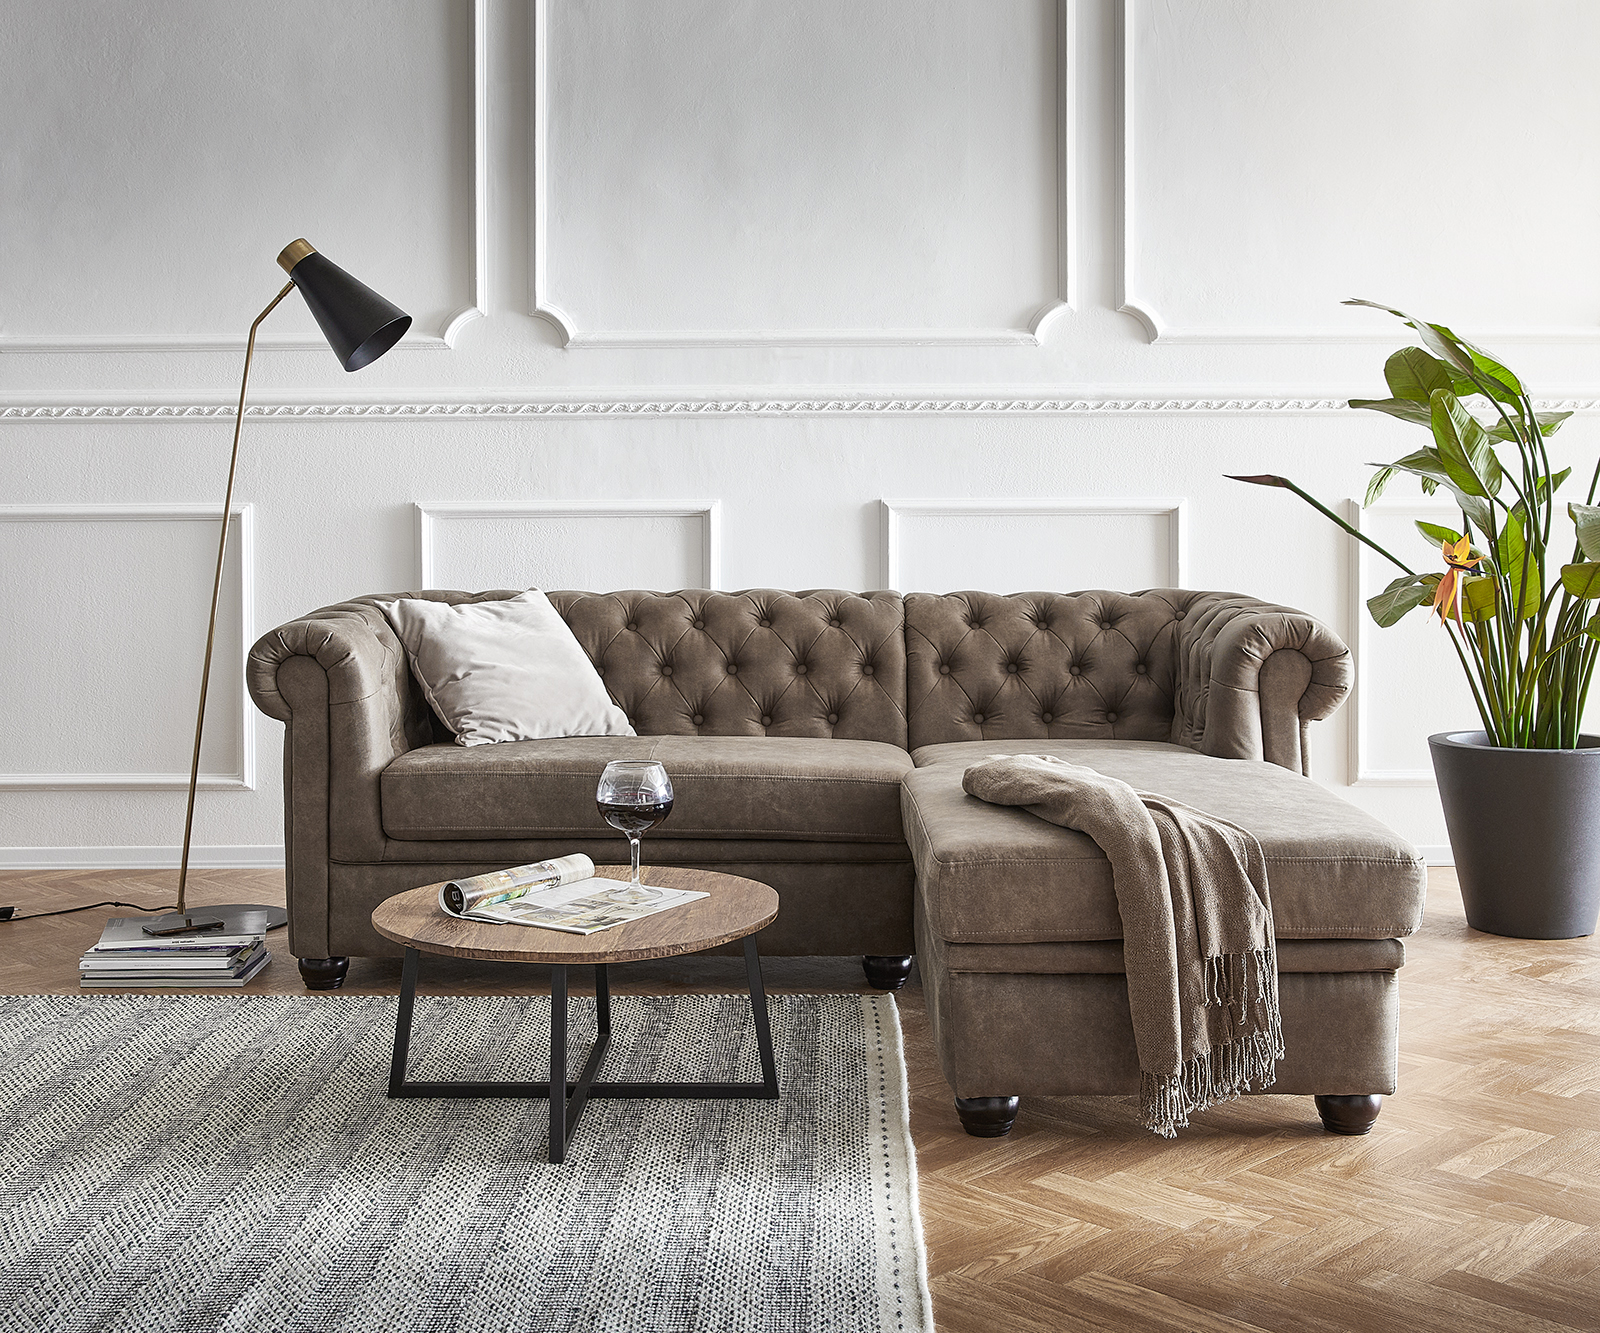 delife-sofa-chesterfield-200x88-cm-taupe-abgesteppt-ottomane-rechts-chesterfields